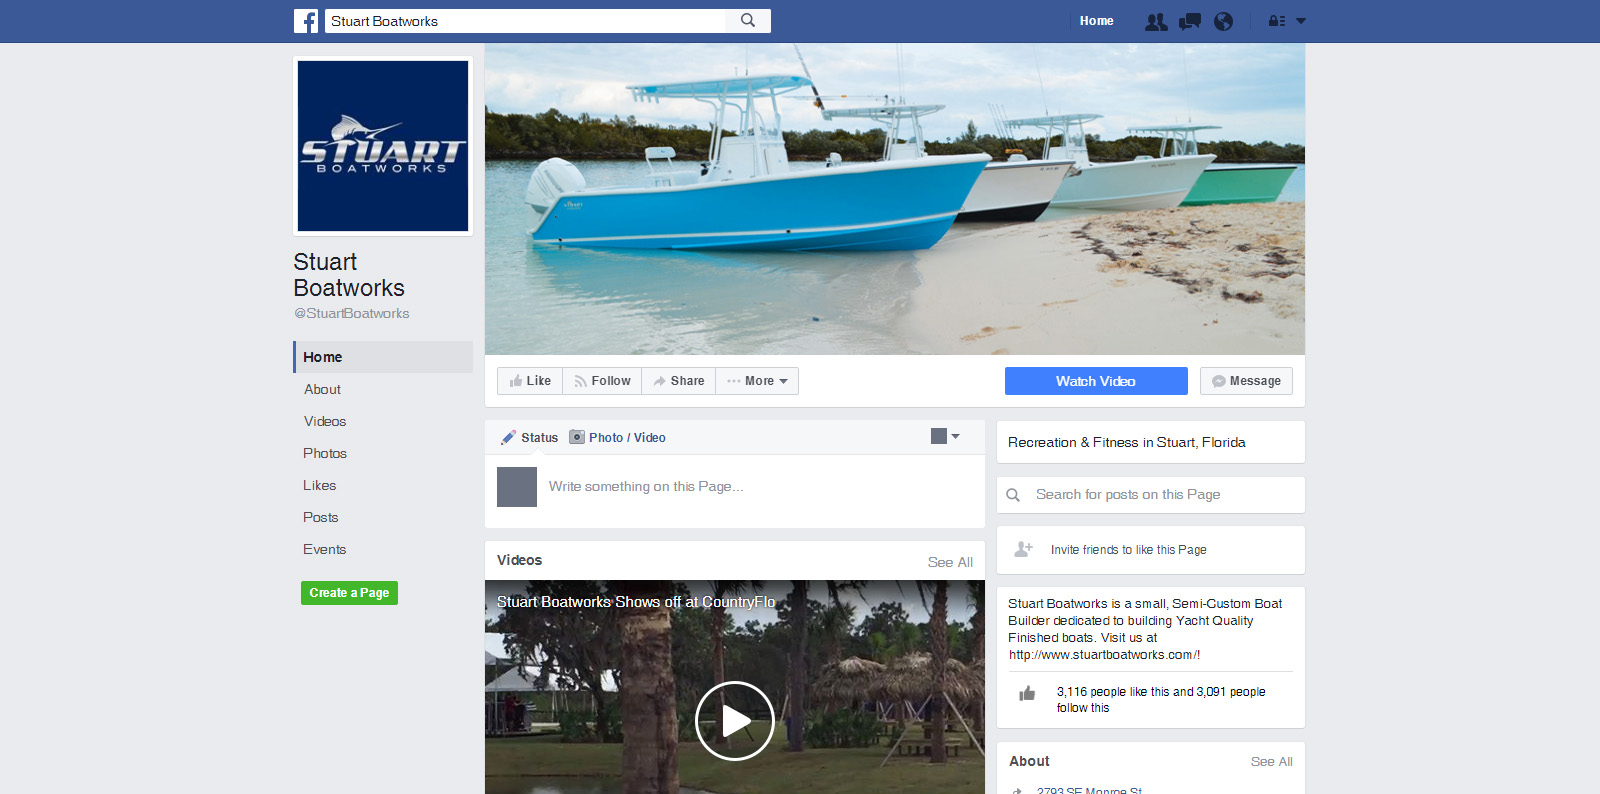 Stuart Boatworks - Social Media Marketing